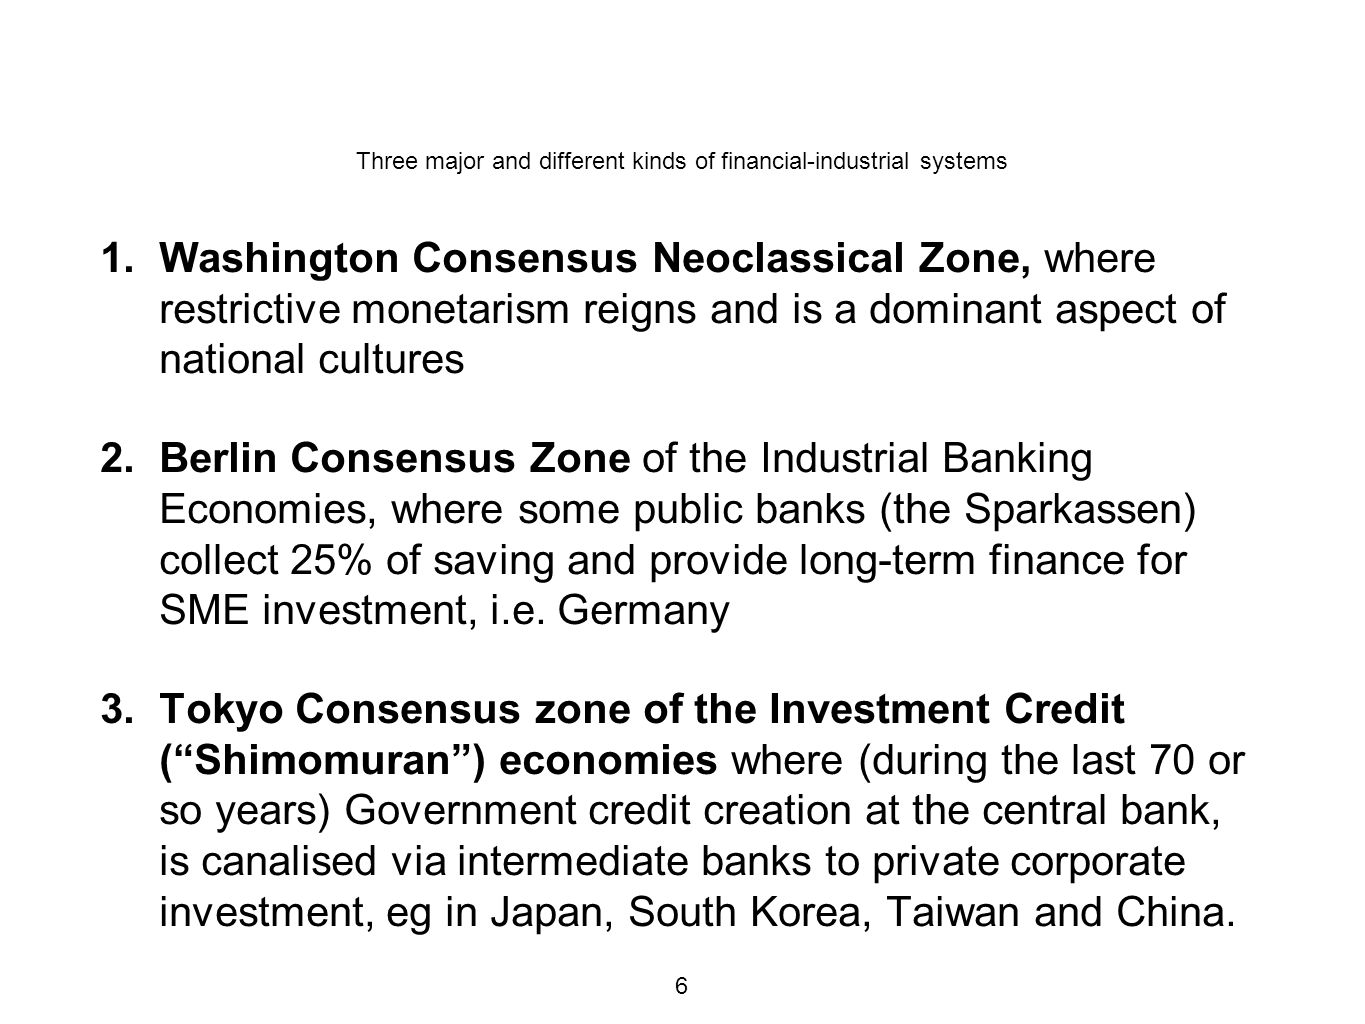 Three major and different kinds of financial-industrial systems 1.Washington Consensus Neoclassical Zone, where restrictive monetarism reigns and is a dominant aspect of national cultures 2.Berlin Consensus Zone of the Industrial Banking Economies, where some public banks (the Sparkassen) collect 25% of saving and provide long-term finance for SME investment, i.e.